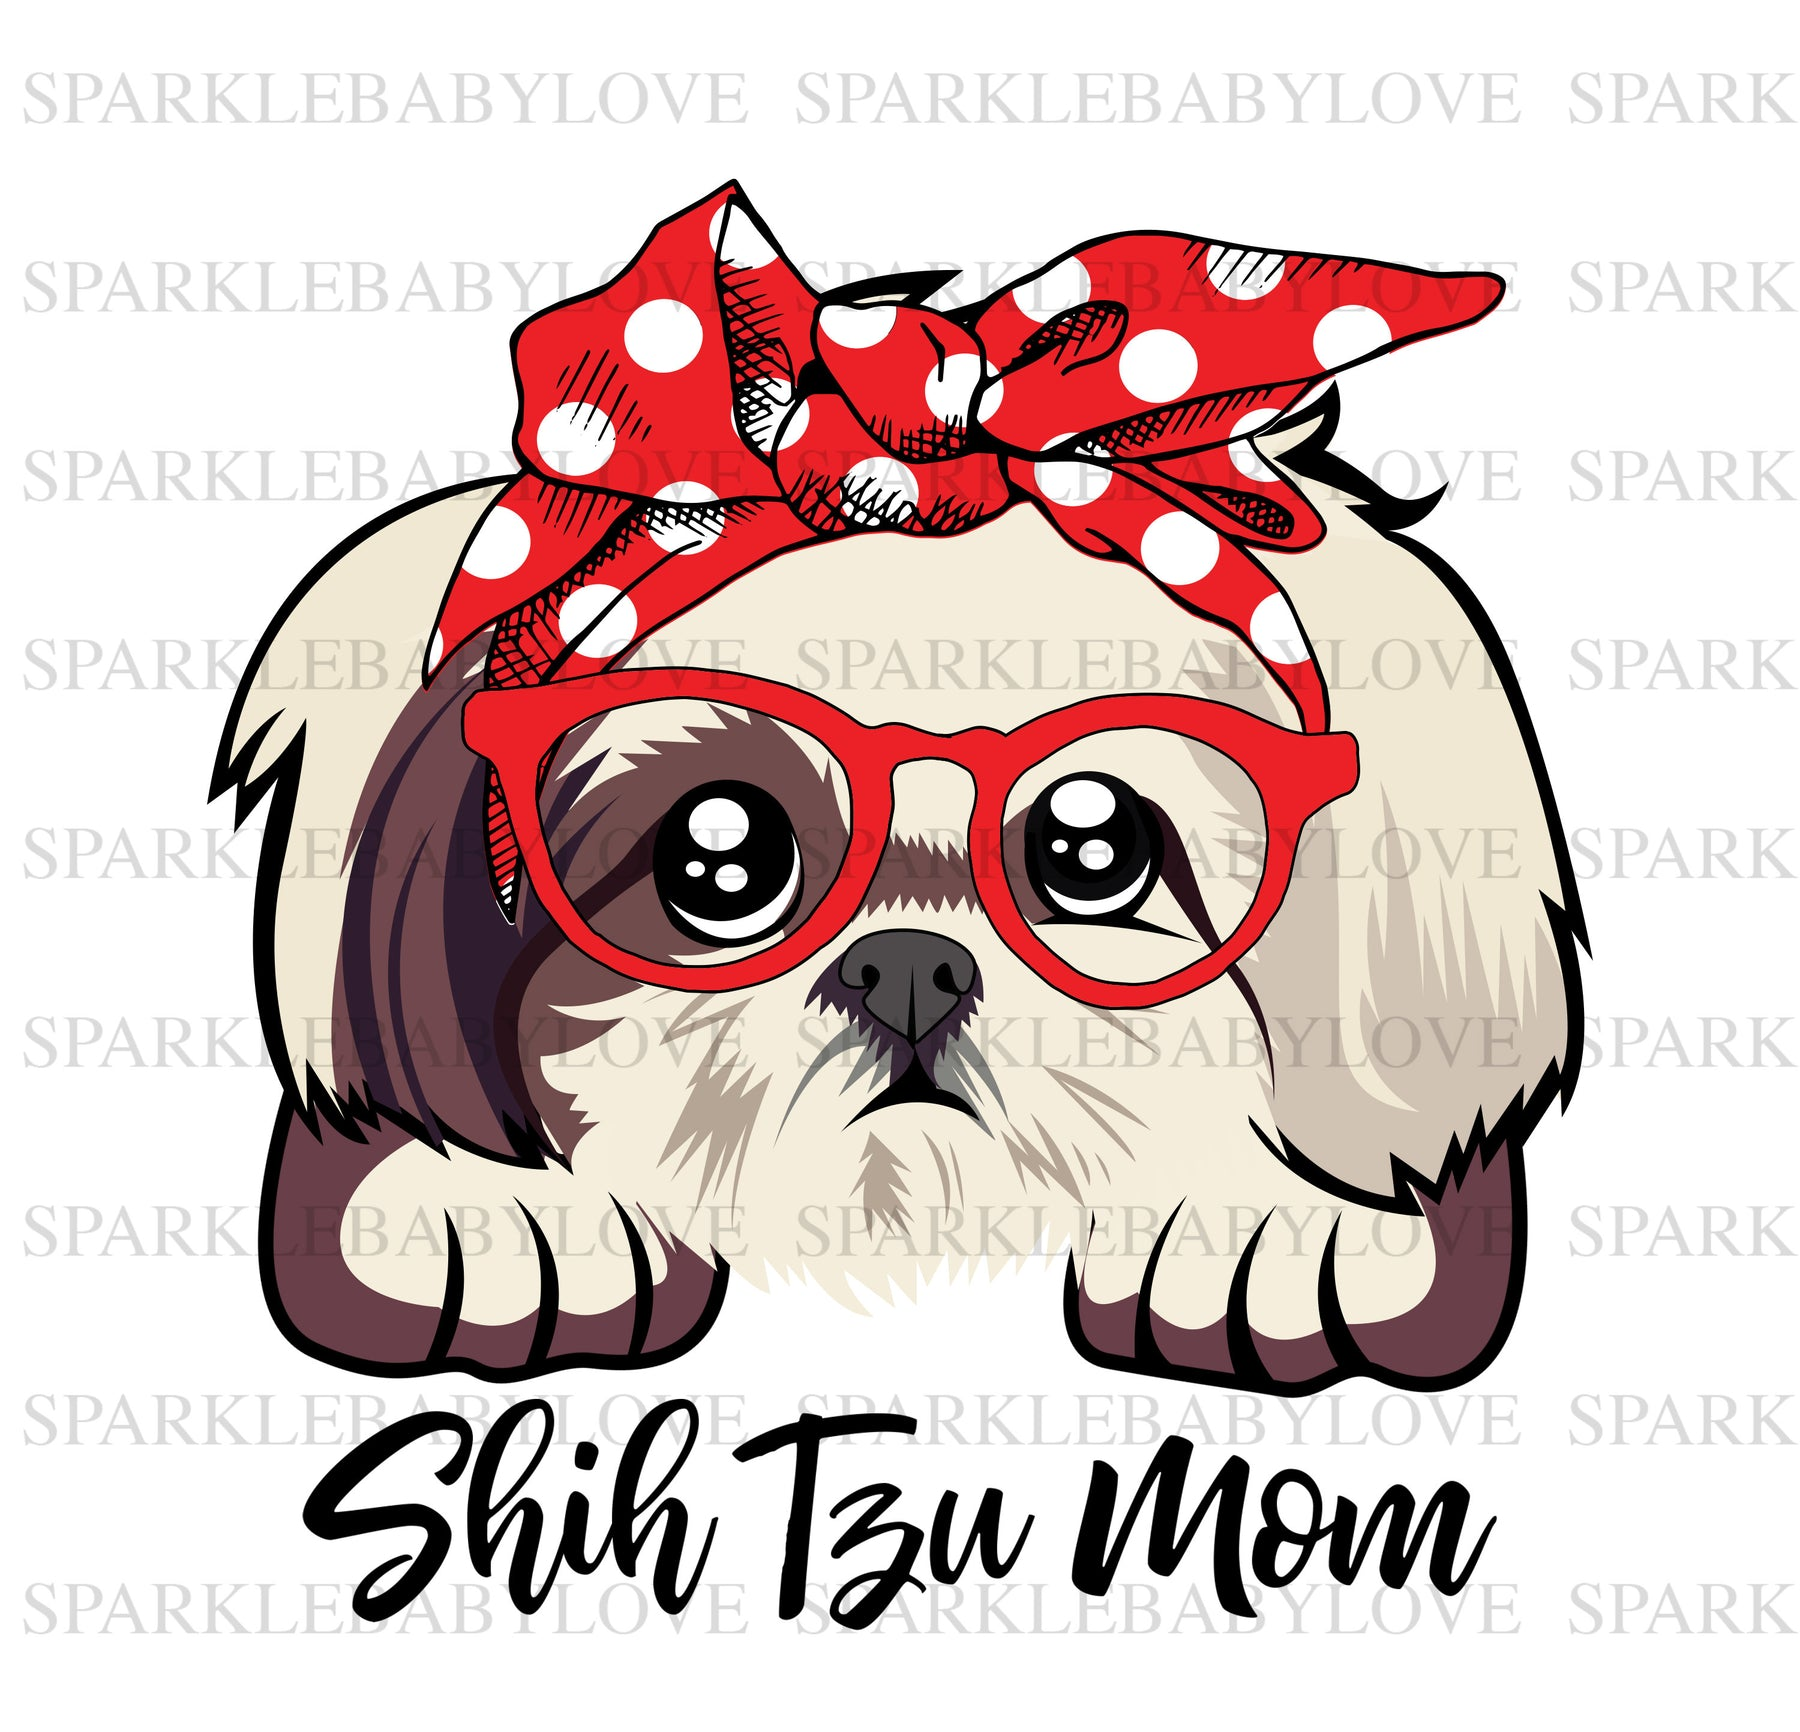 Shih  tzu mom Decal, Car Decal, Yeti Decal, Tumbler Decal, Shih tzu Decal, Dog decal, dog car decal, dog lover decal